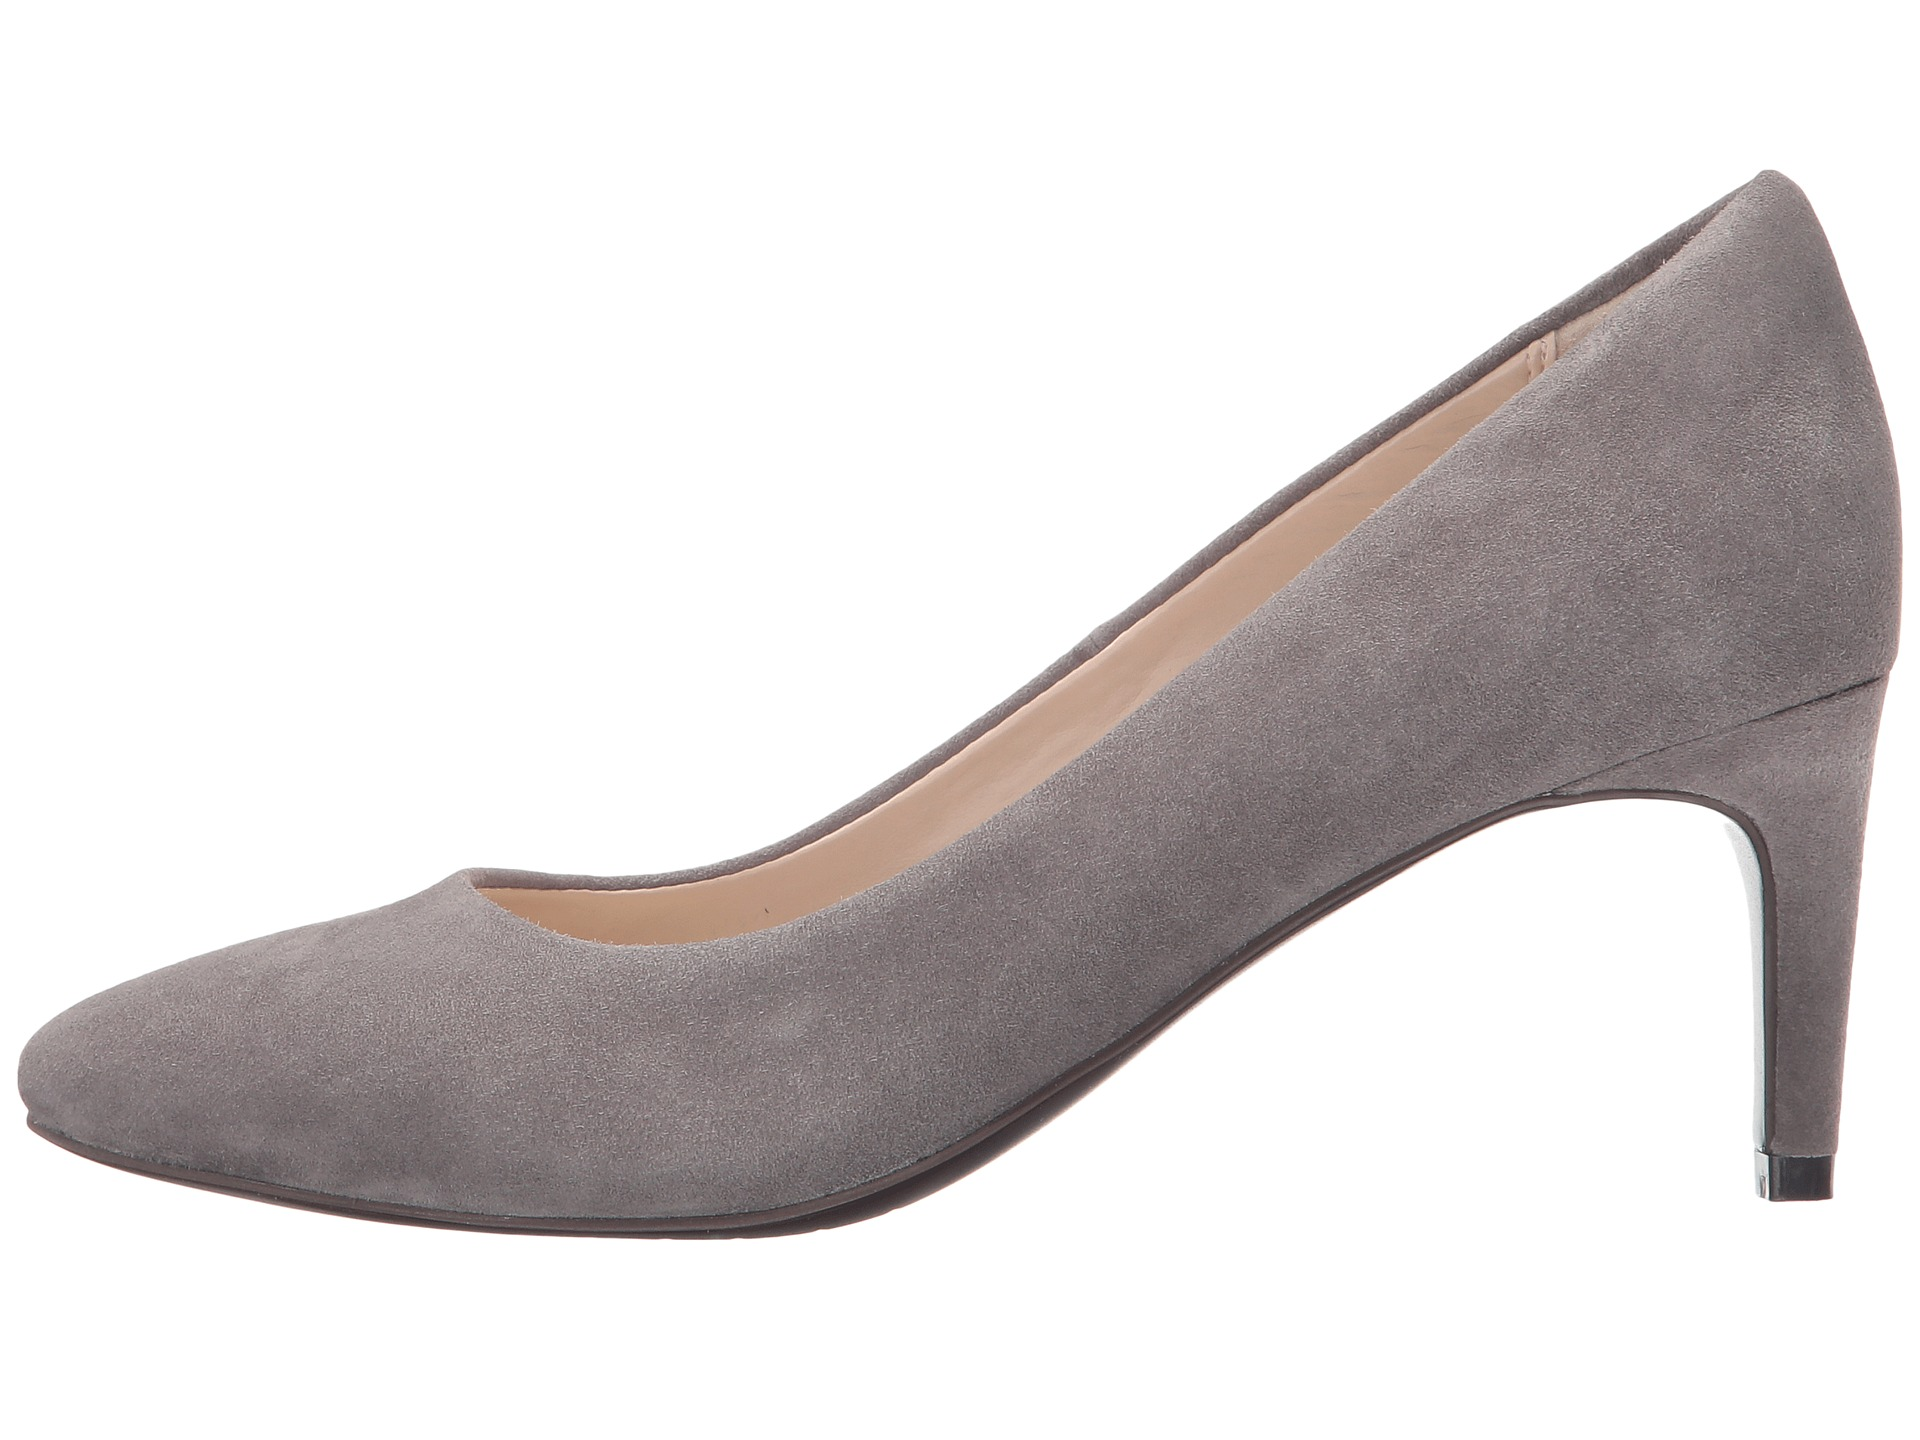 Cole Haan Clara Grand Pump 65mm at 6pm.com